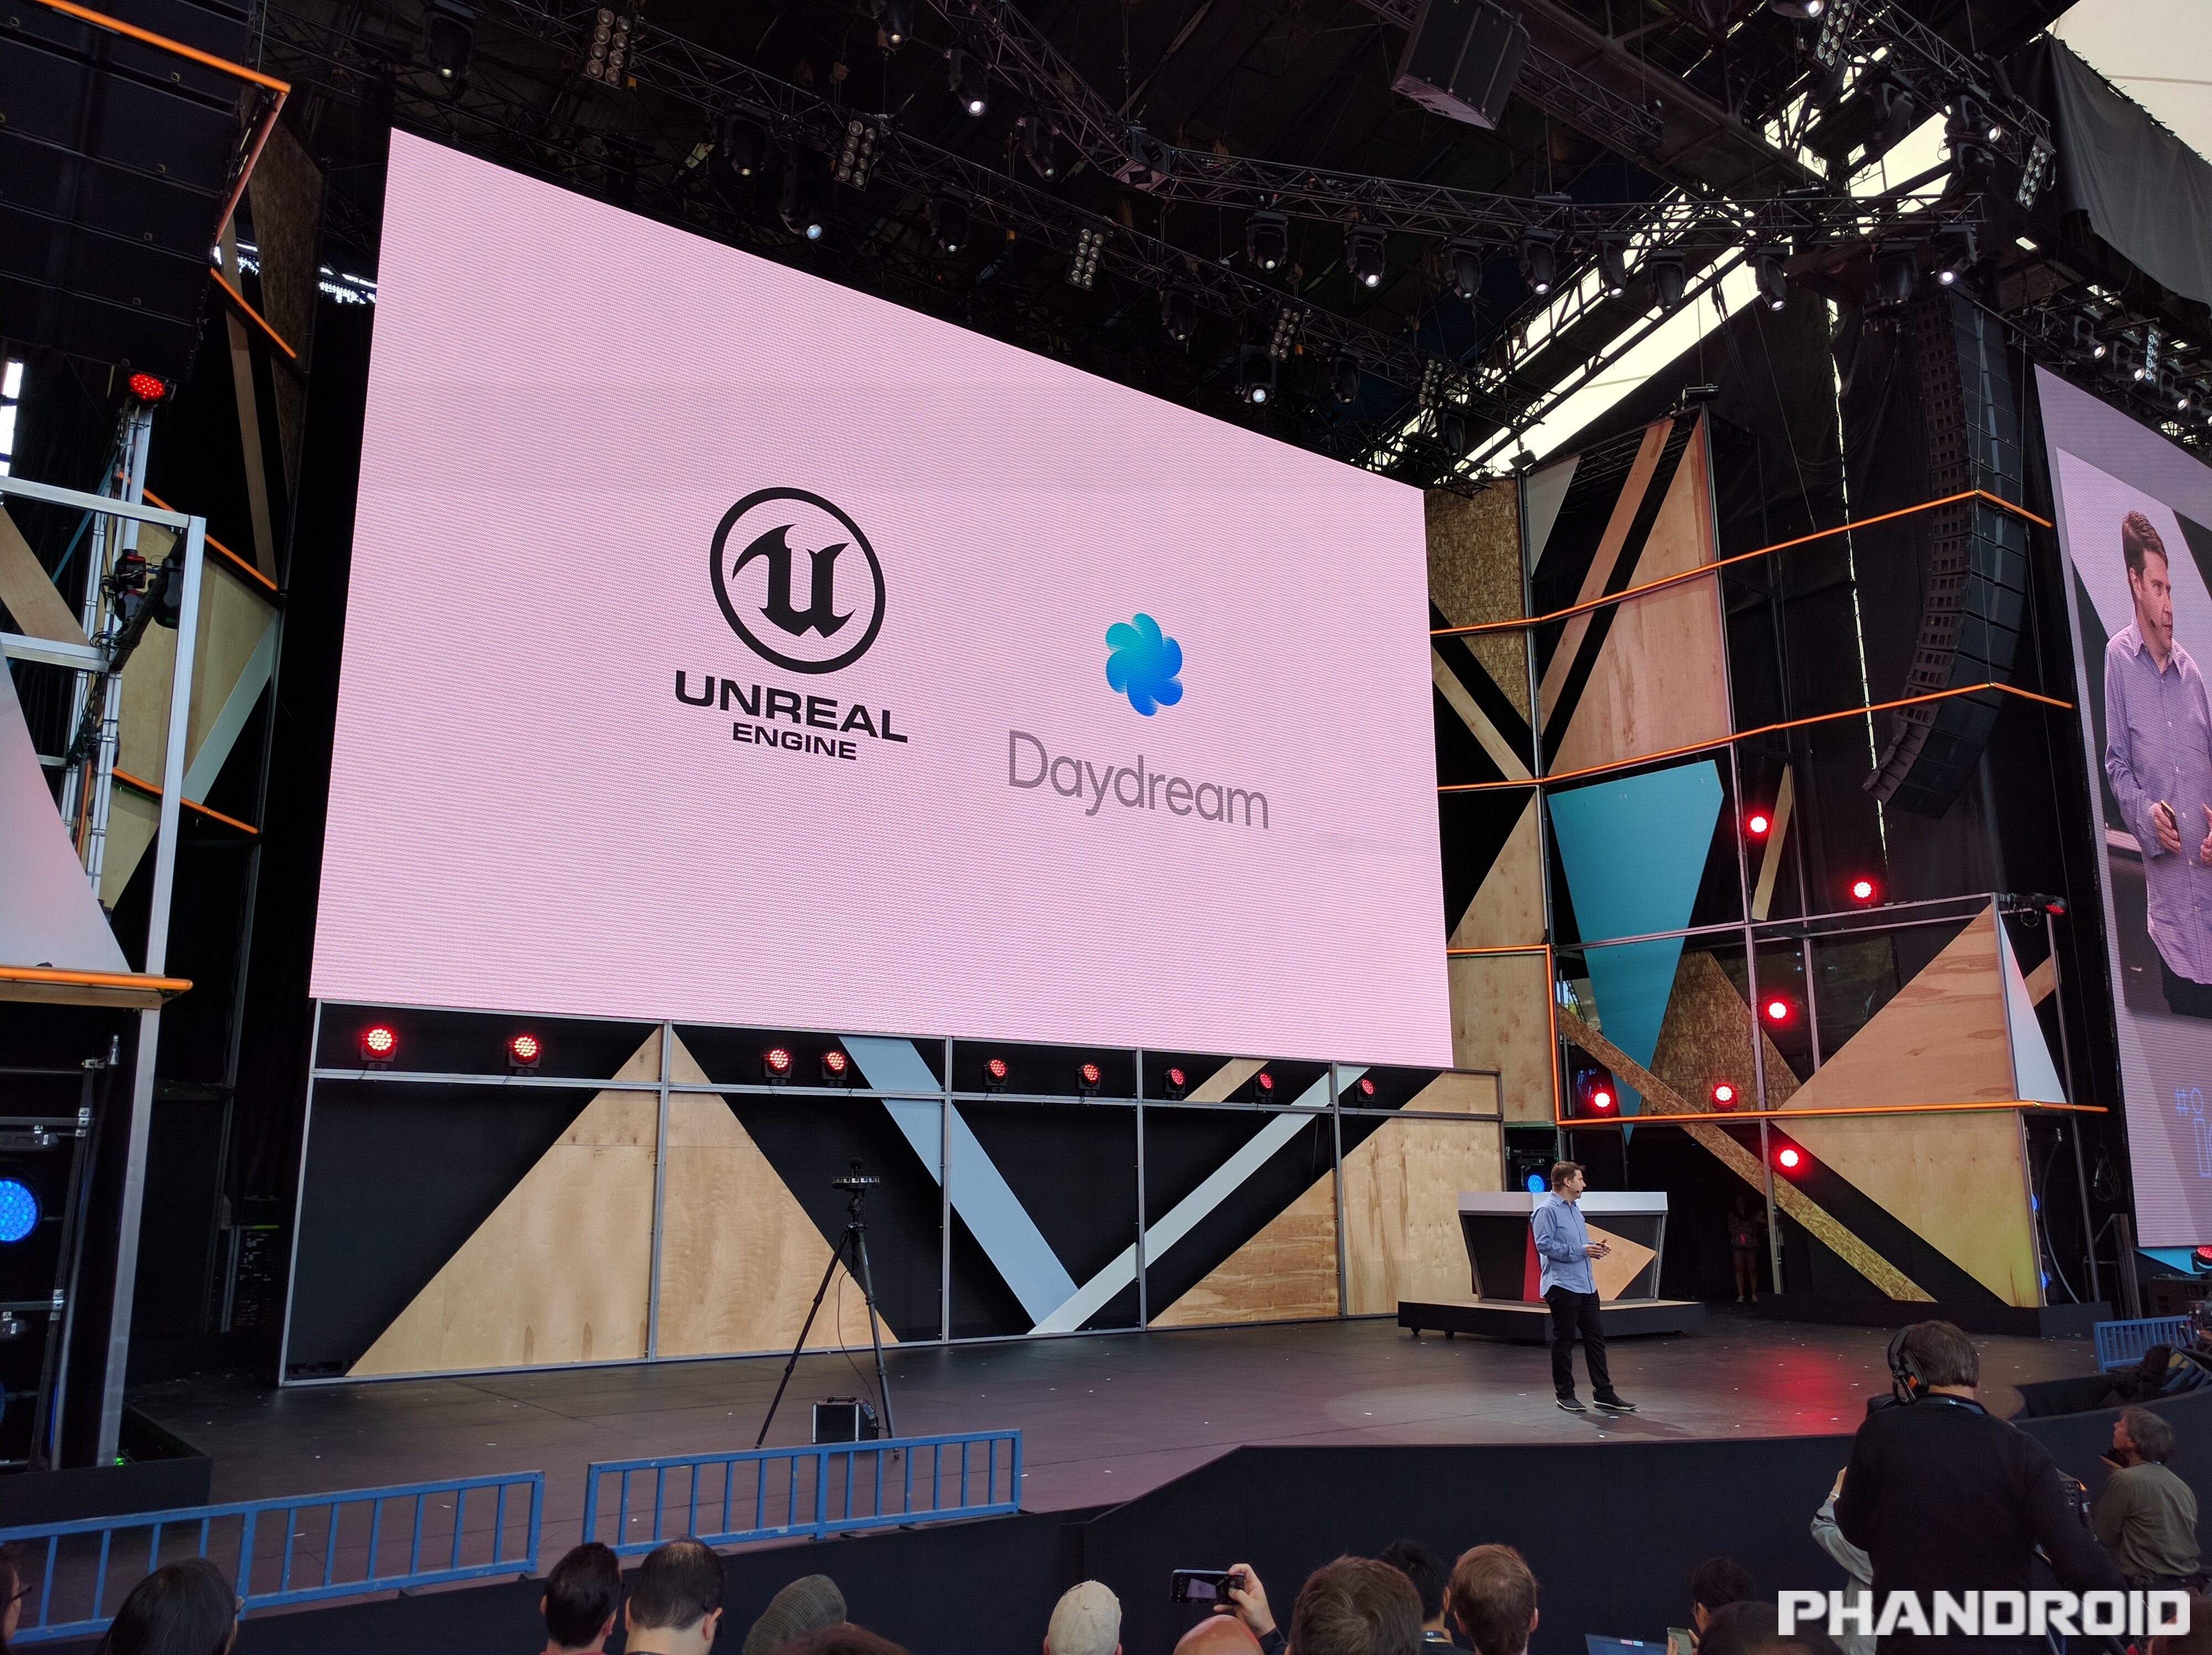 Unreal Engine and Unity will support Daydream VR at launch